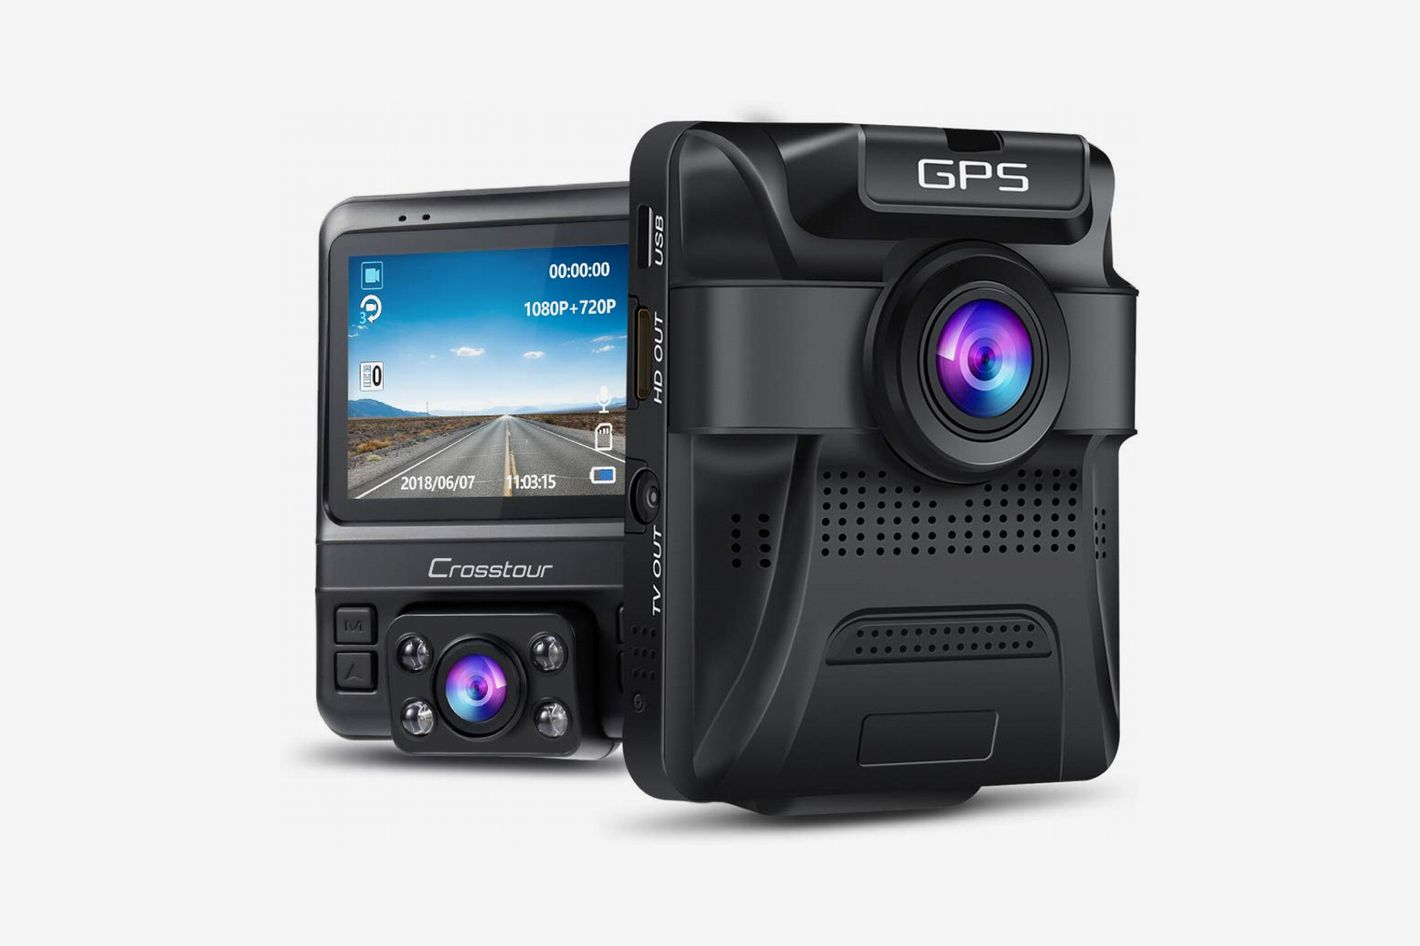 "Crosstour Dual Lens Dash Cam with Built-in GPS, 1080p Front and 720p Inside with Parking Monitoring, Infrared Night Vision, 2.4"" Screen"